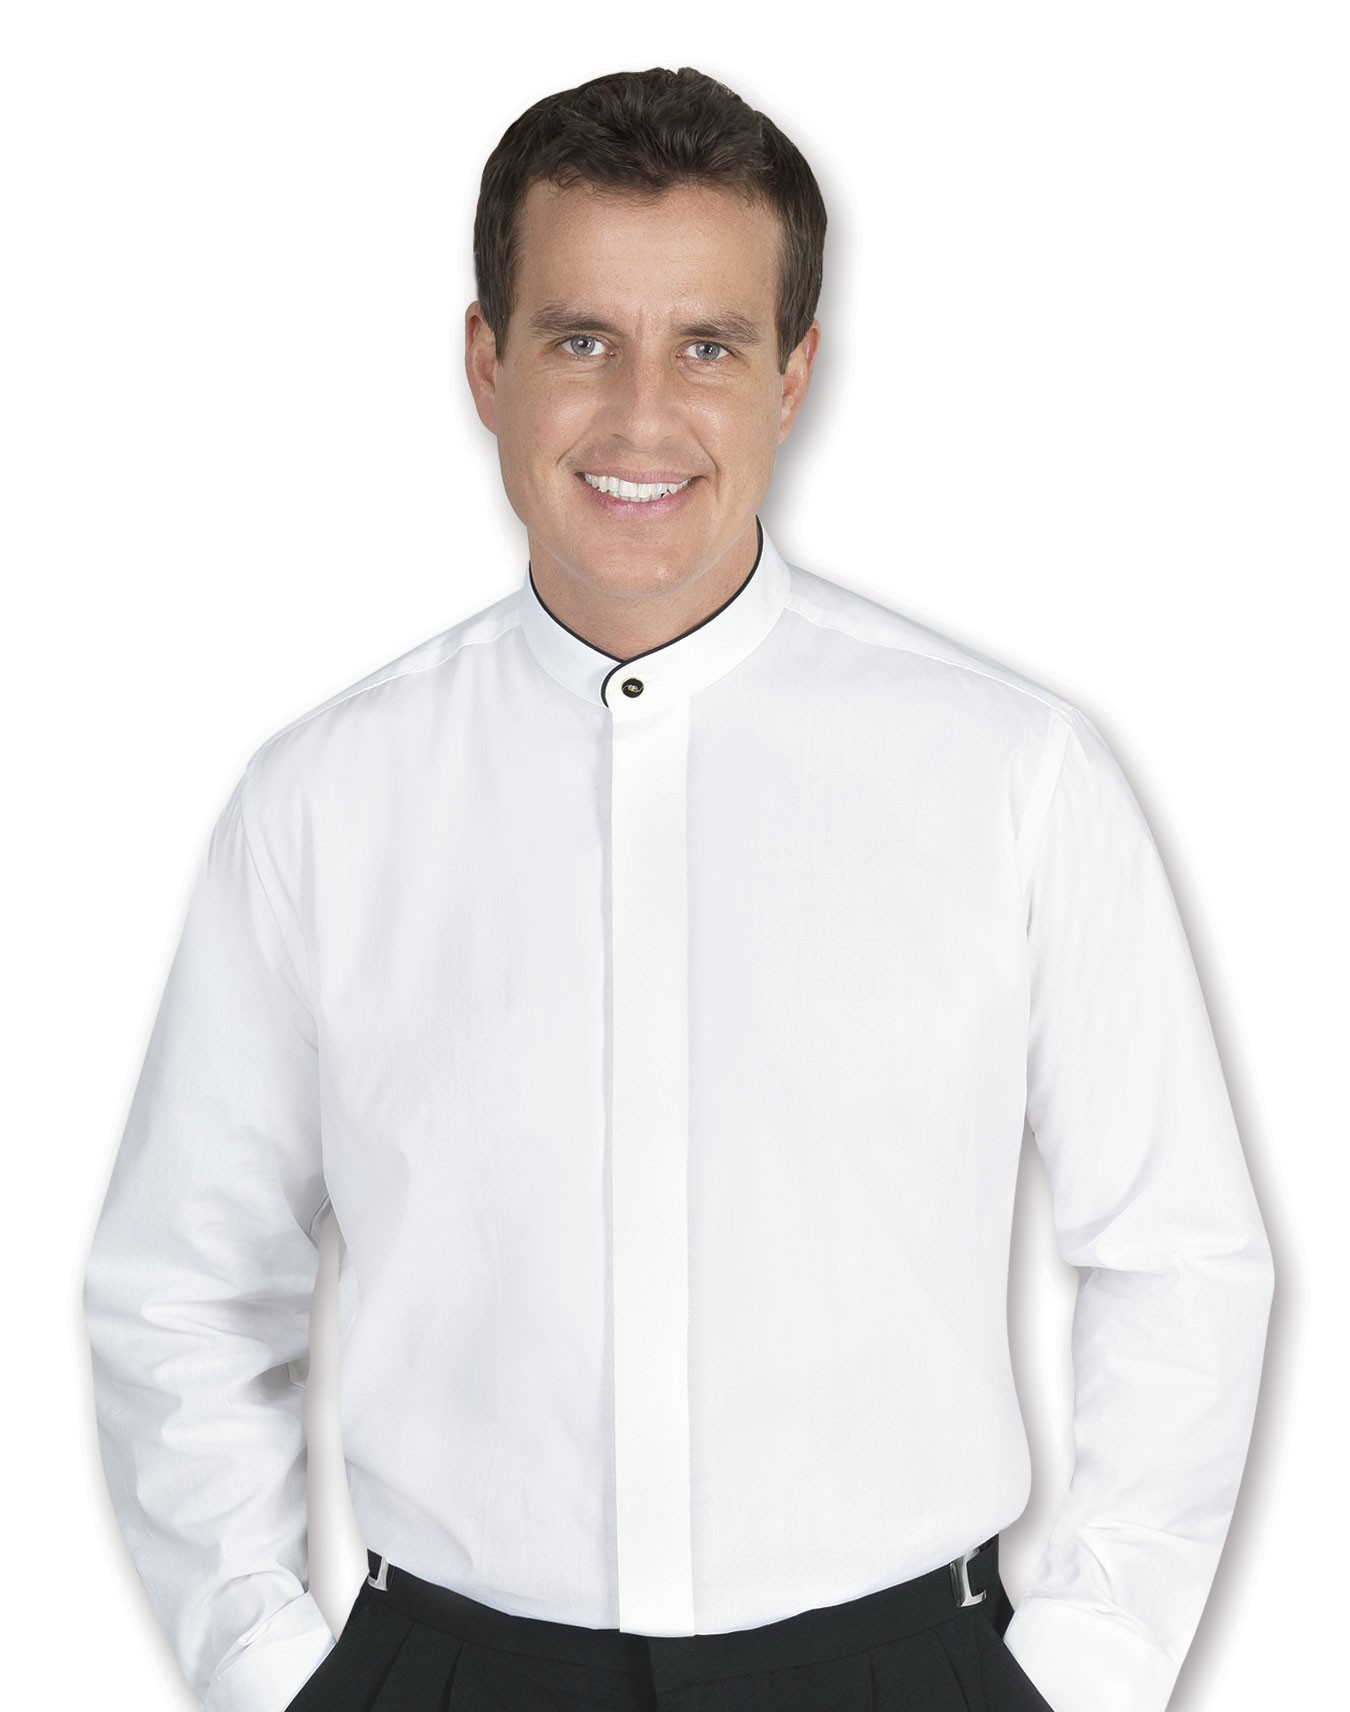 Men's Banded Collar White Dress Shirt With Black Piping